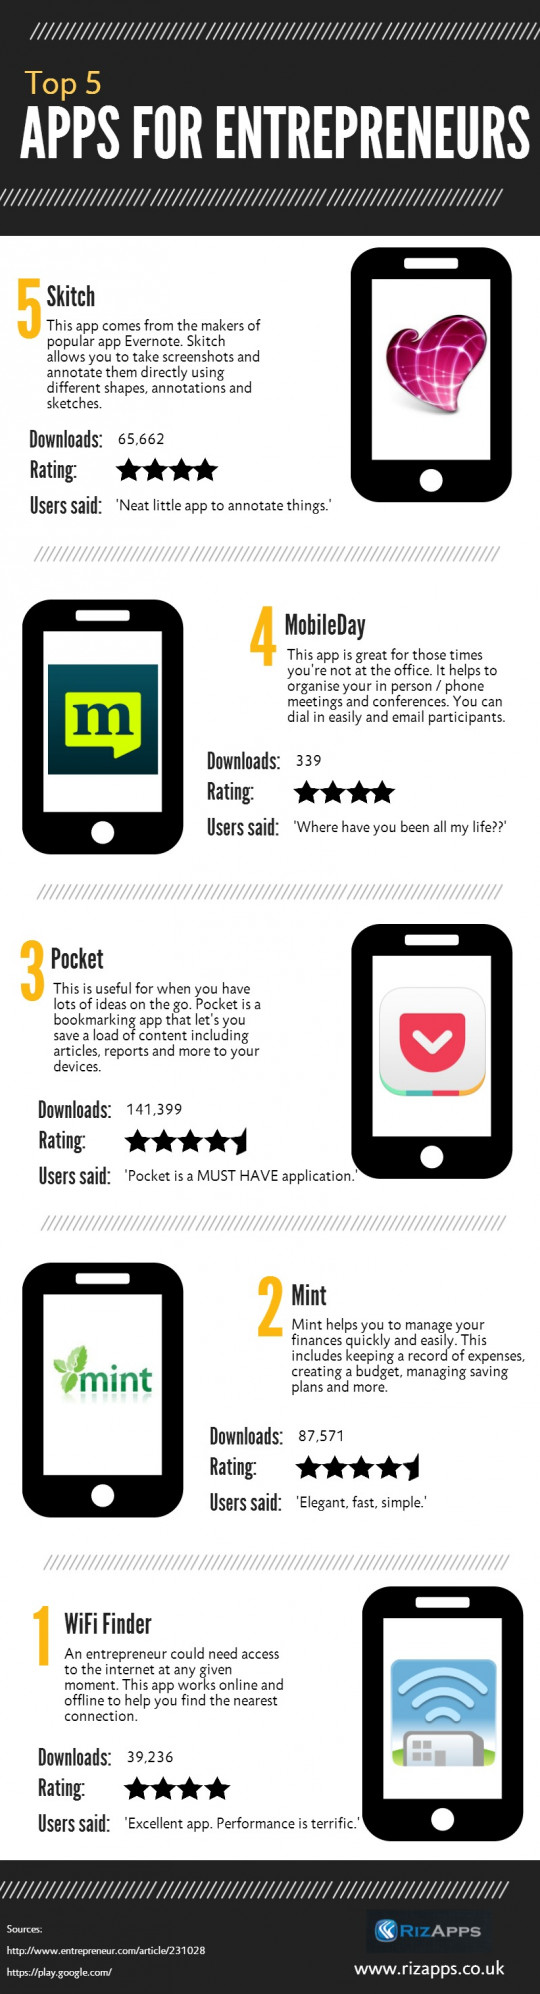 Top 5 Apps for Entrepreneurs